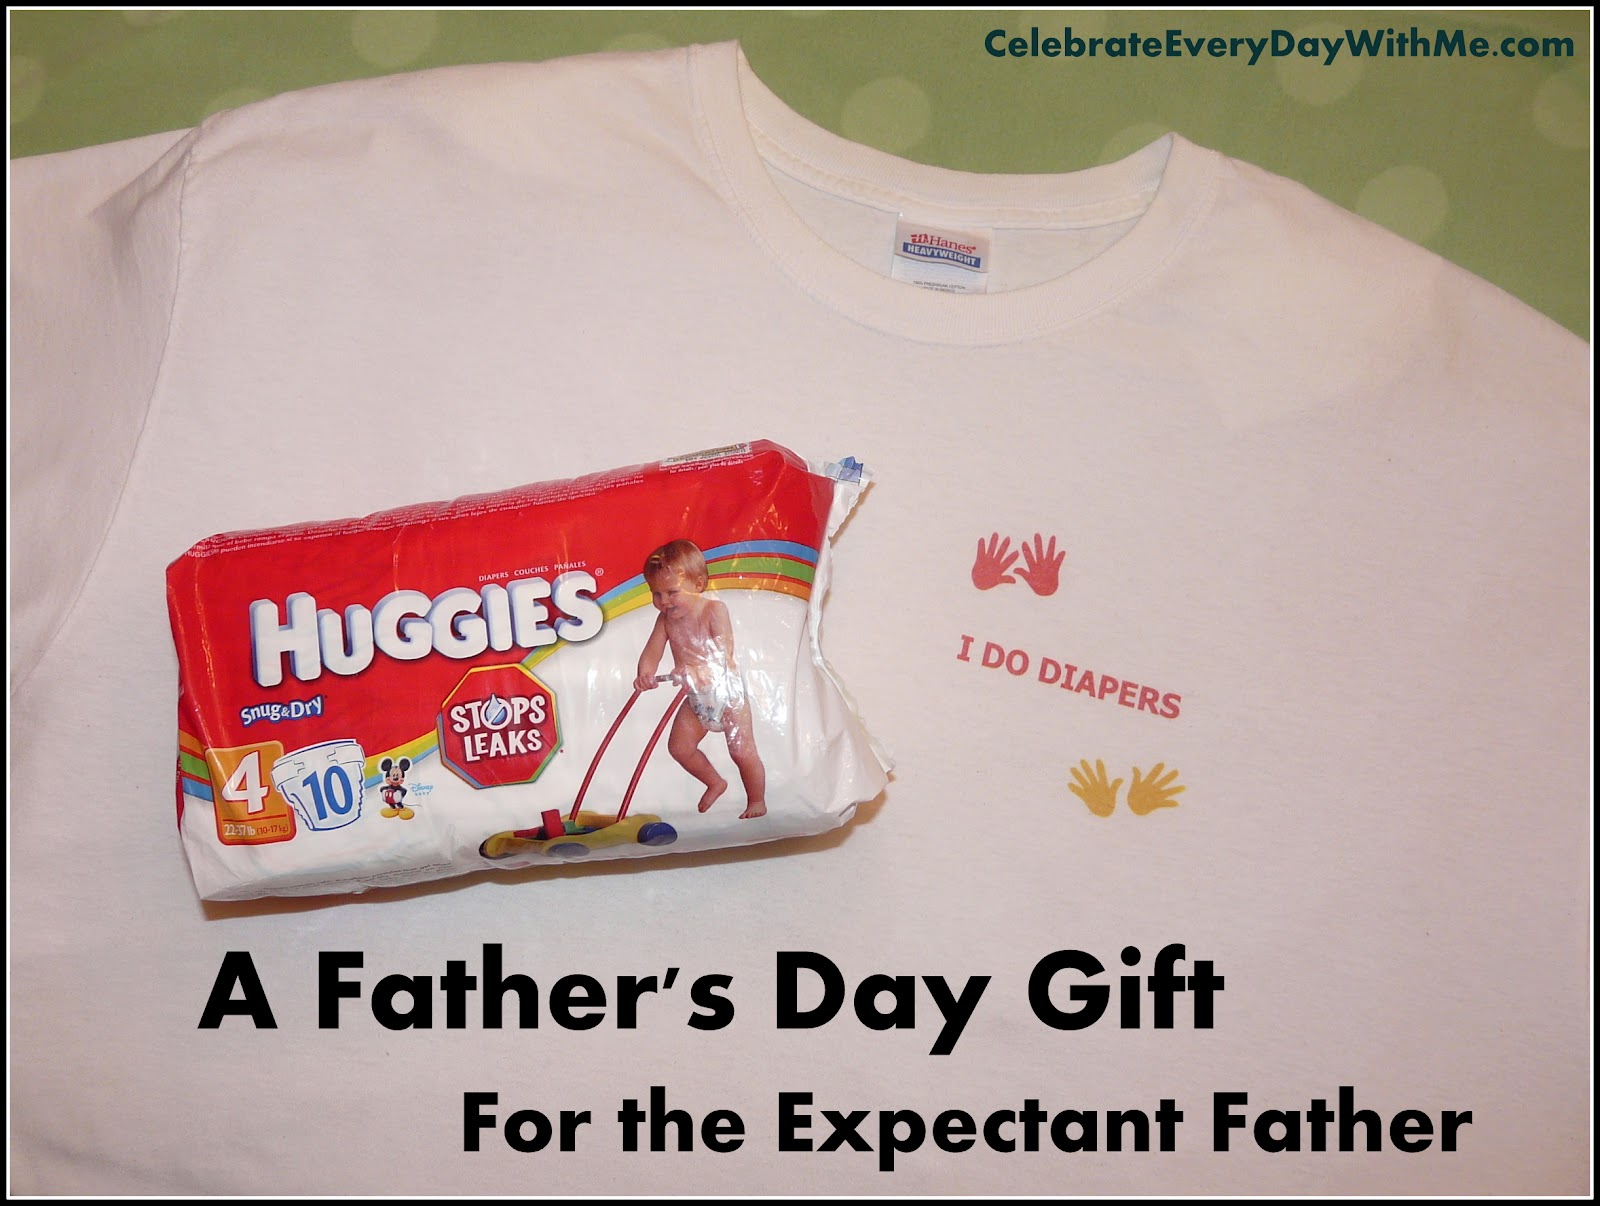 A Father's Day Gift For The Expectant Father